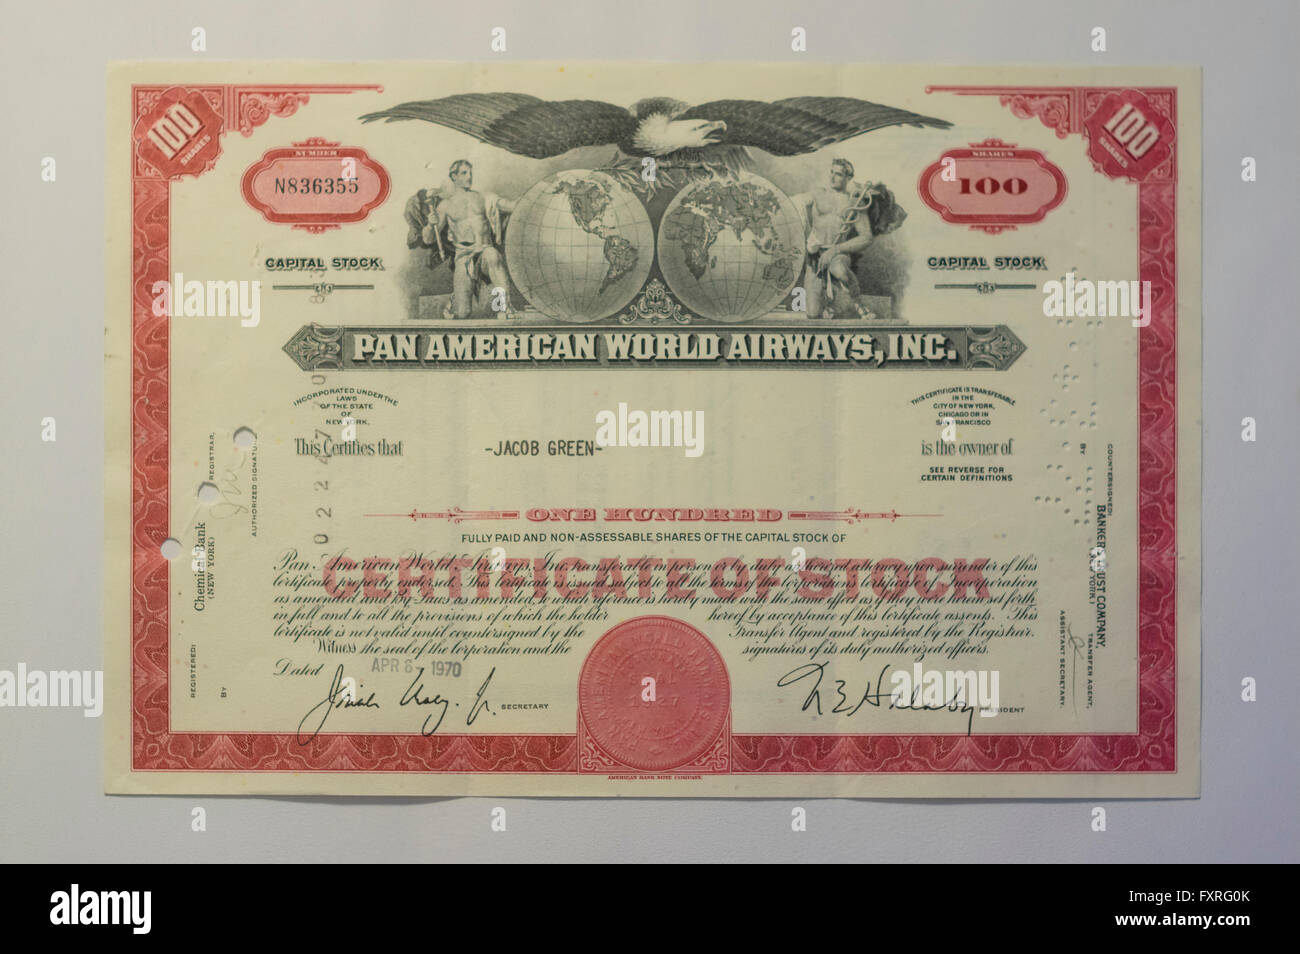 1970ies Pan American World Airways stock certificate. - Stock Image